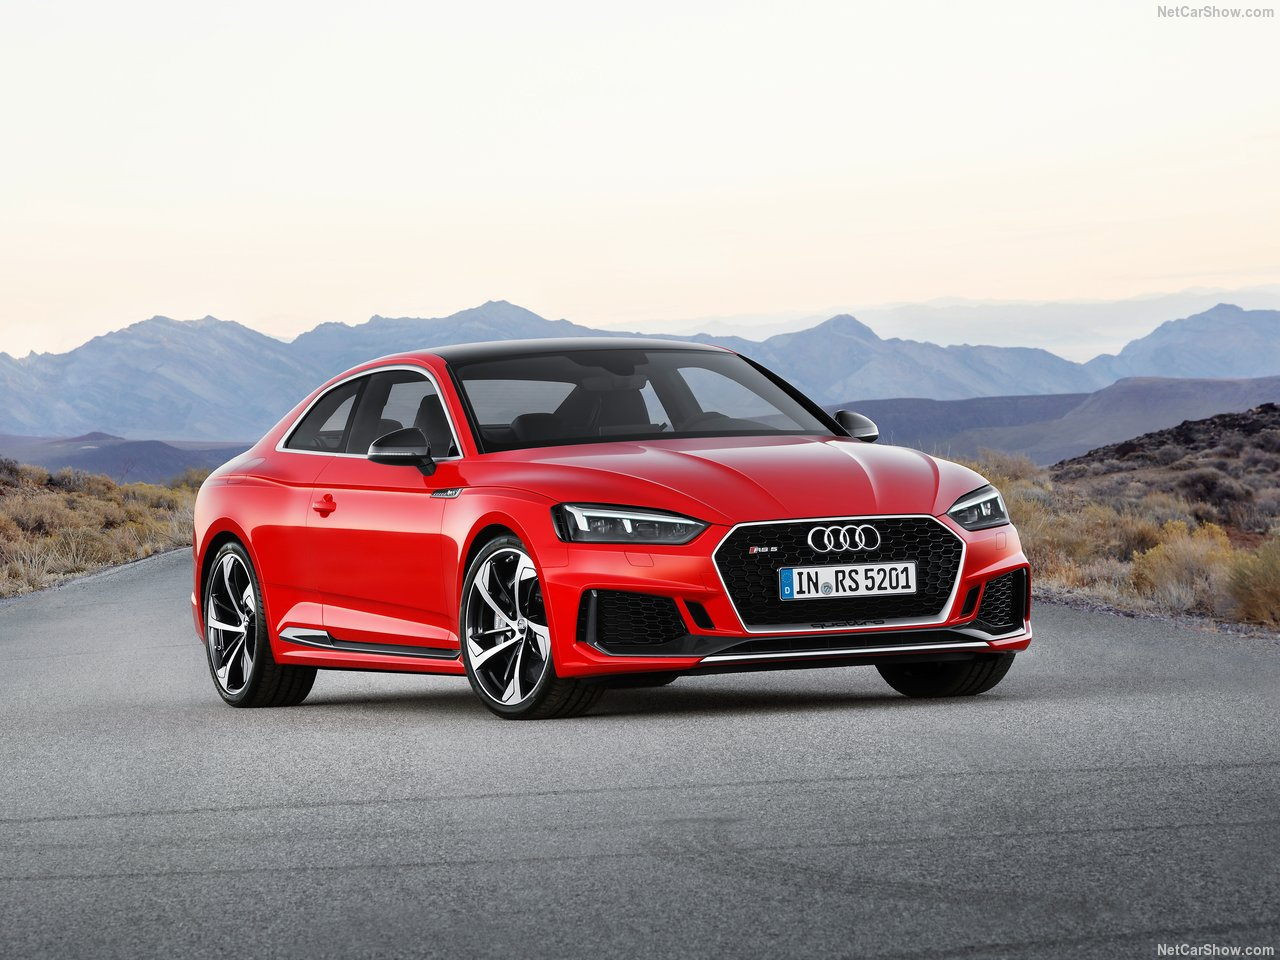 Audi RS5 Coupe photo 179109